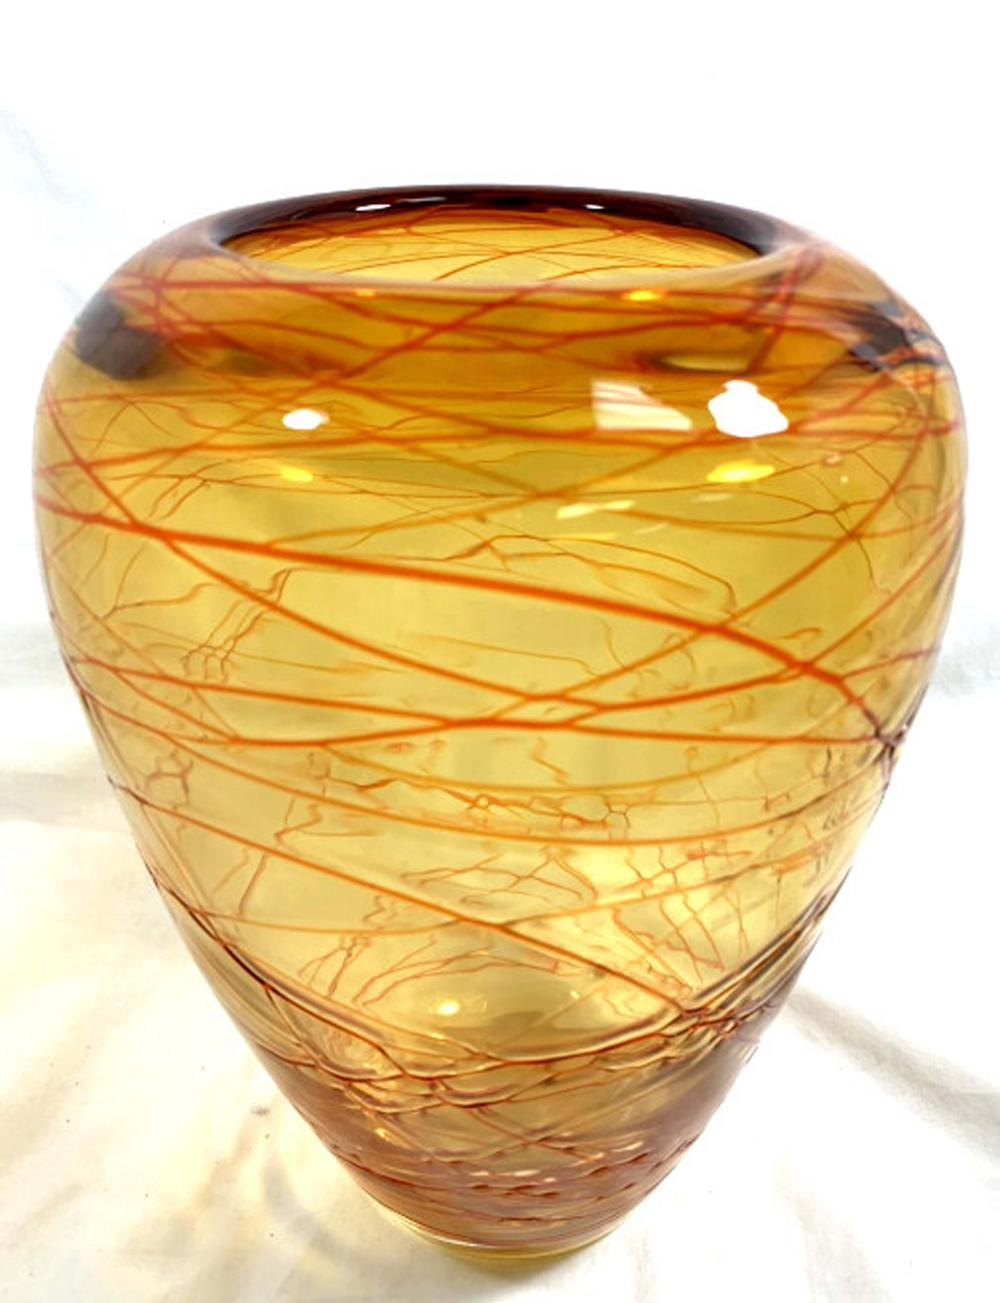 COOL ABSTRACT BRIGHT ORANGE GLASS WRAP MOD VASE